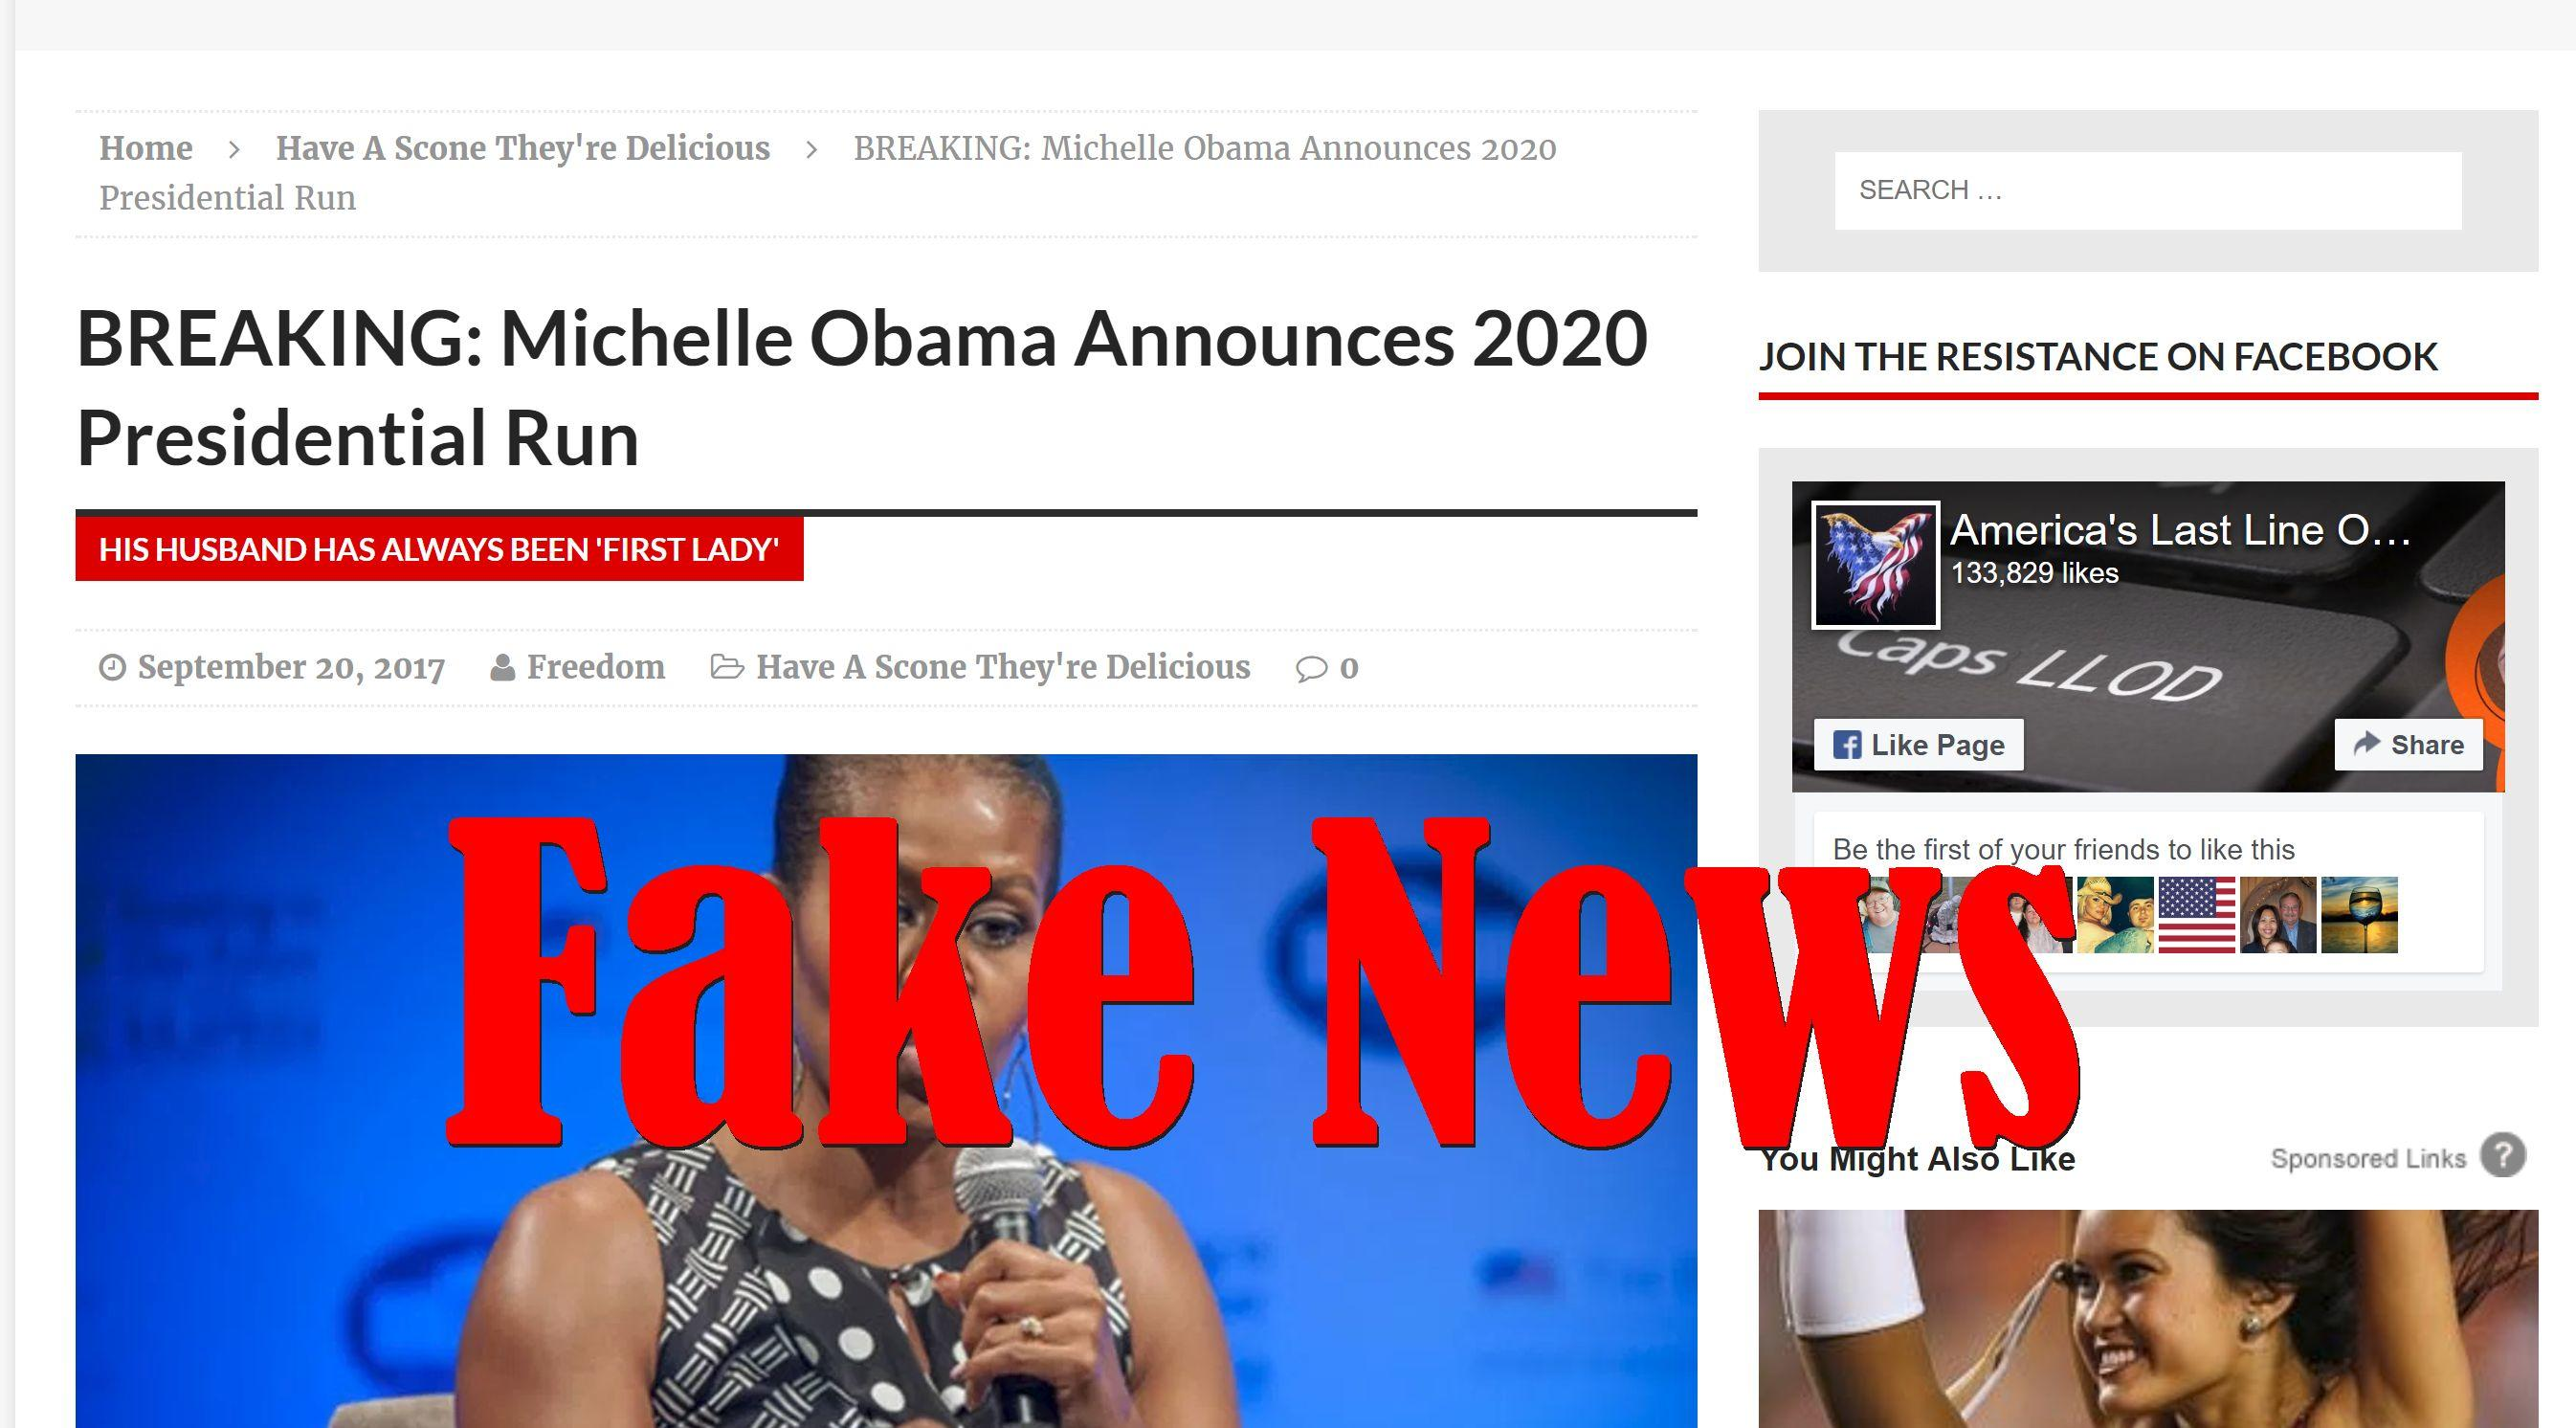 Fake News: Michelle Obama Did NOT Announce 2020 Presidential Run